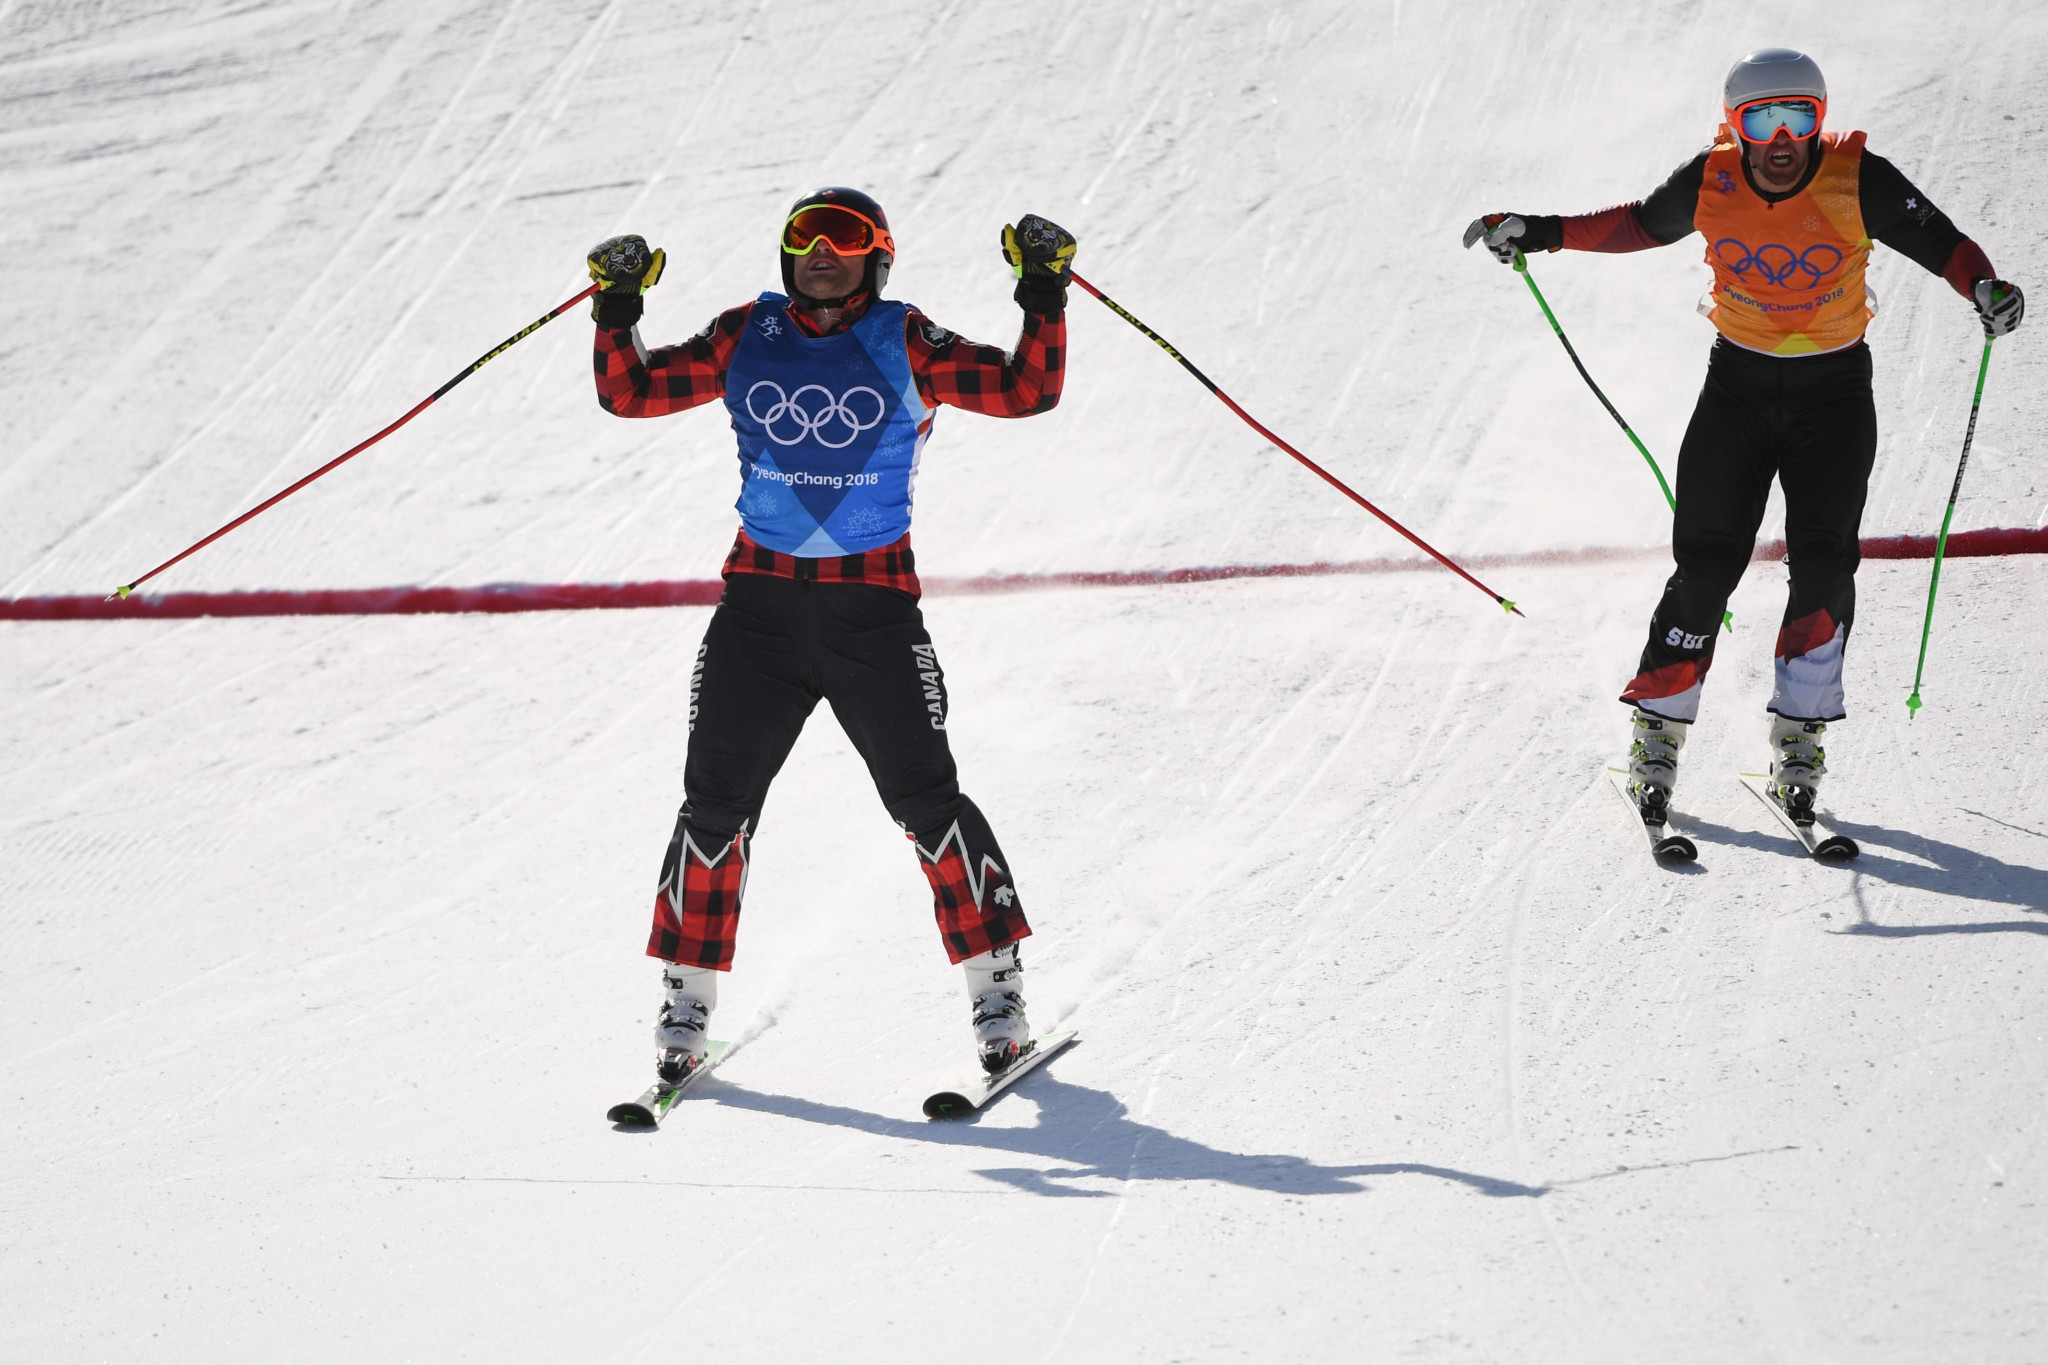 NewsAlert: Canada's Brady Leman wins gold in Olympic men's skicross